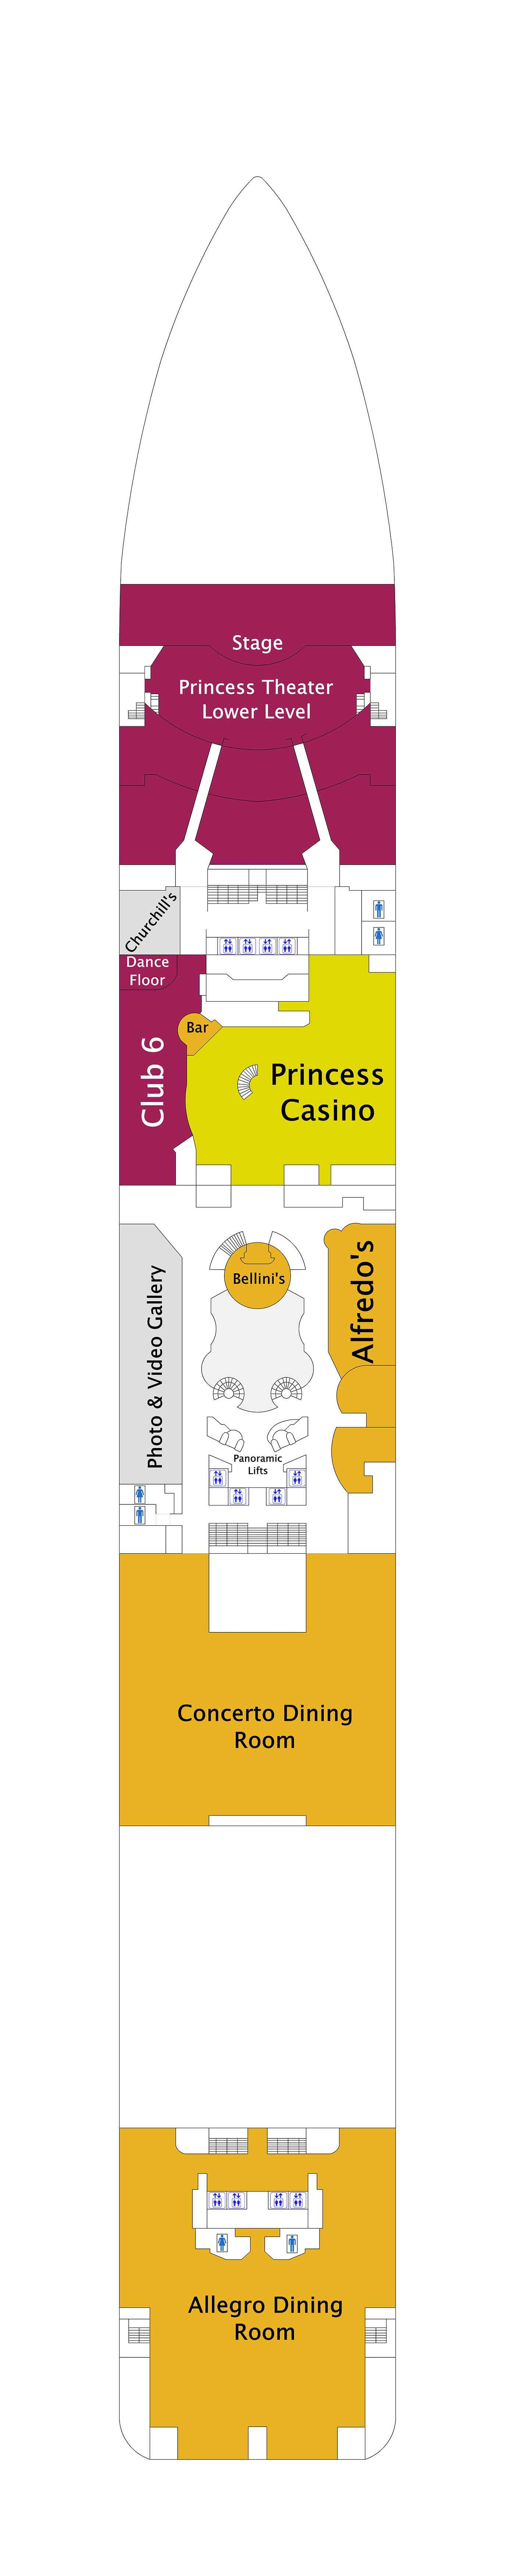 Royal Princess deck plan 6